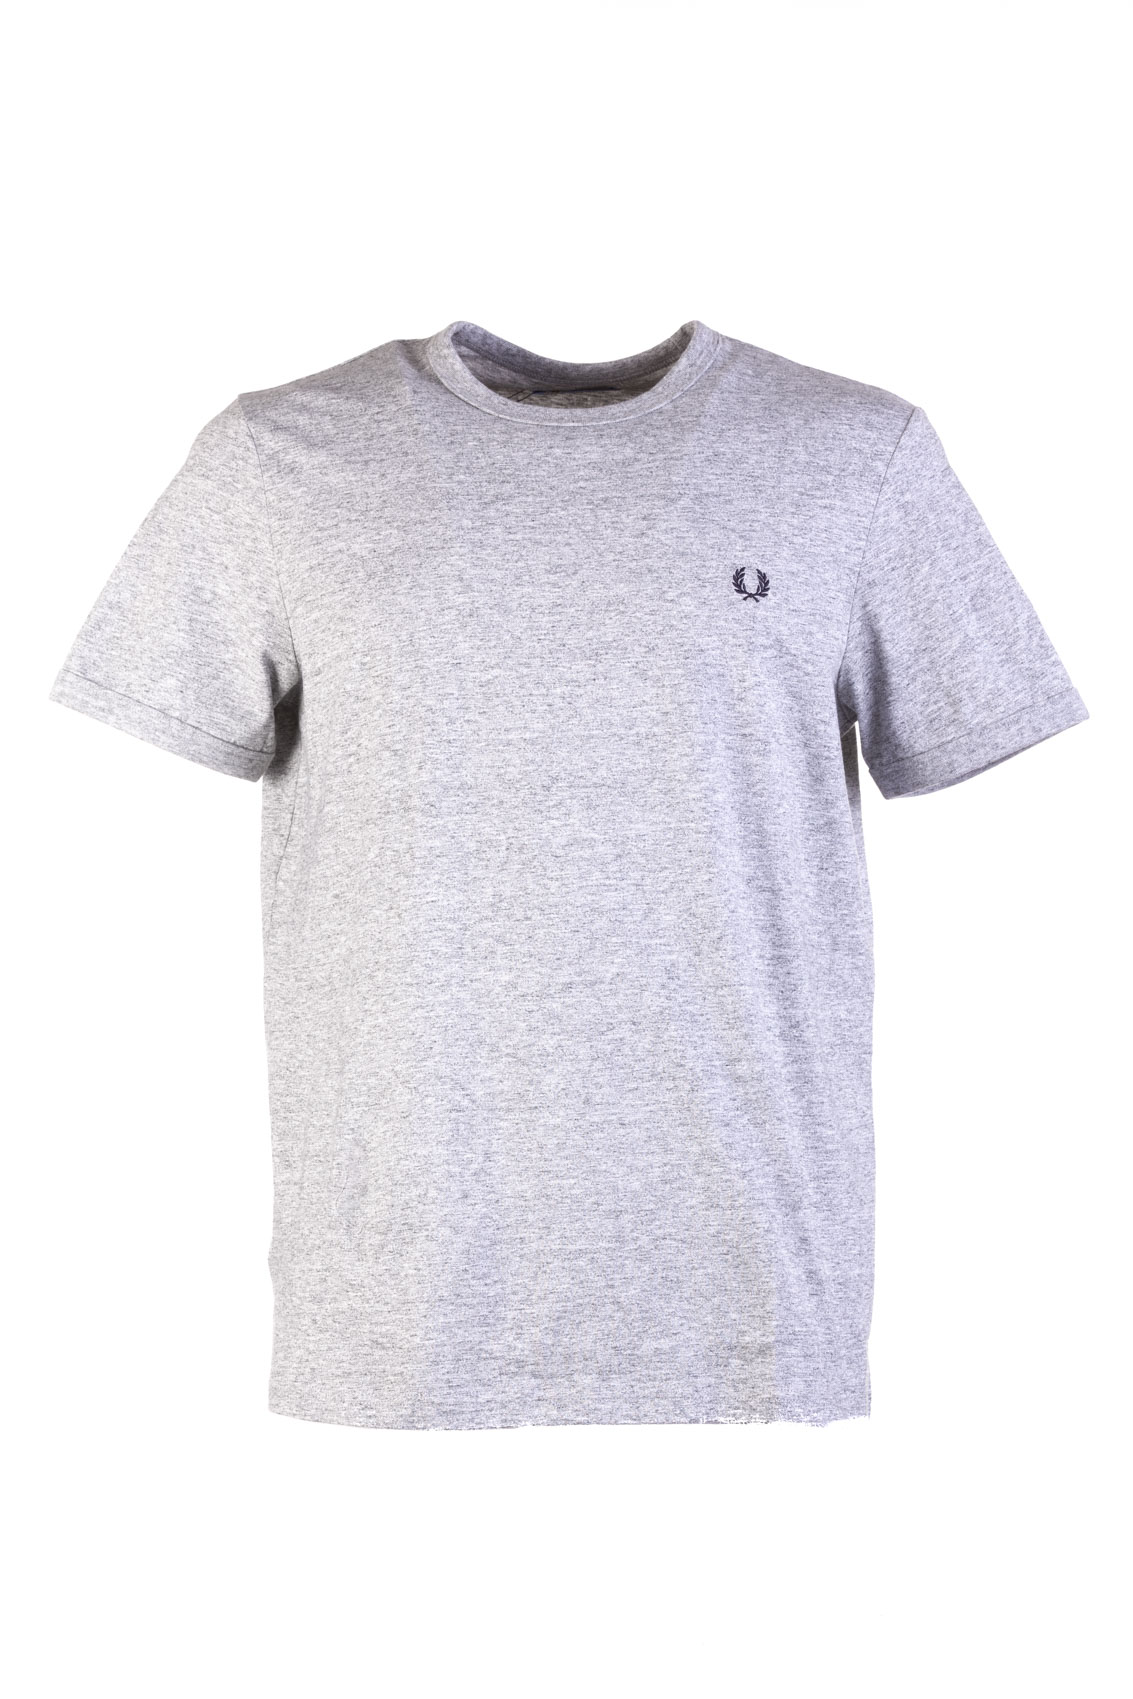 a07233f818 FRED PERRY RINGER T-SHIRT GRIGIO MELANGE